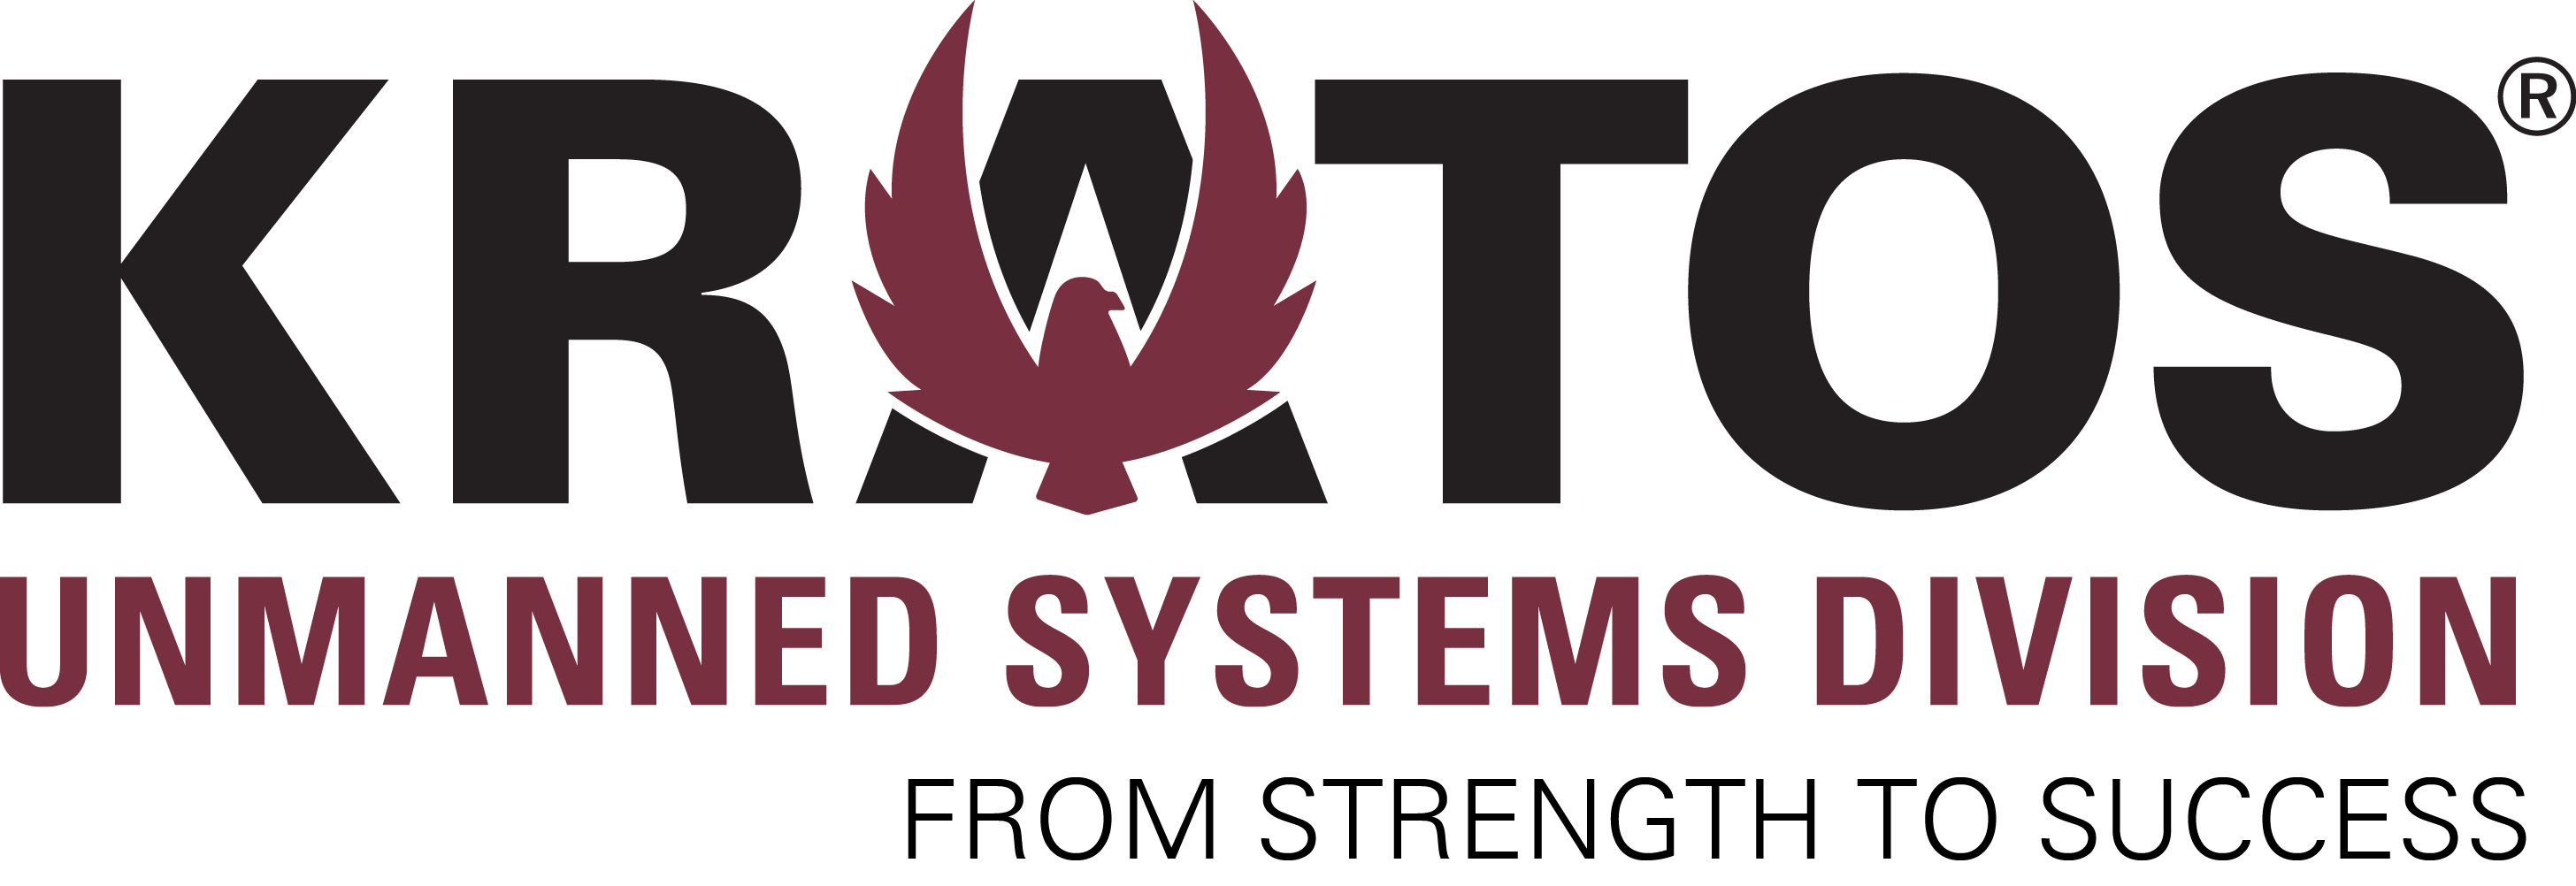 Kratos Unmanned Systems Division